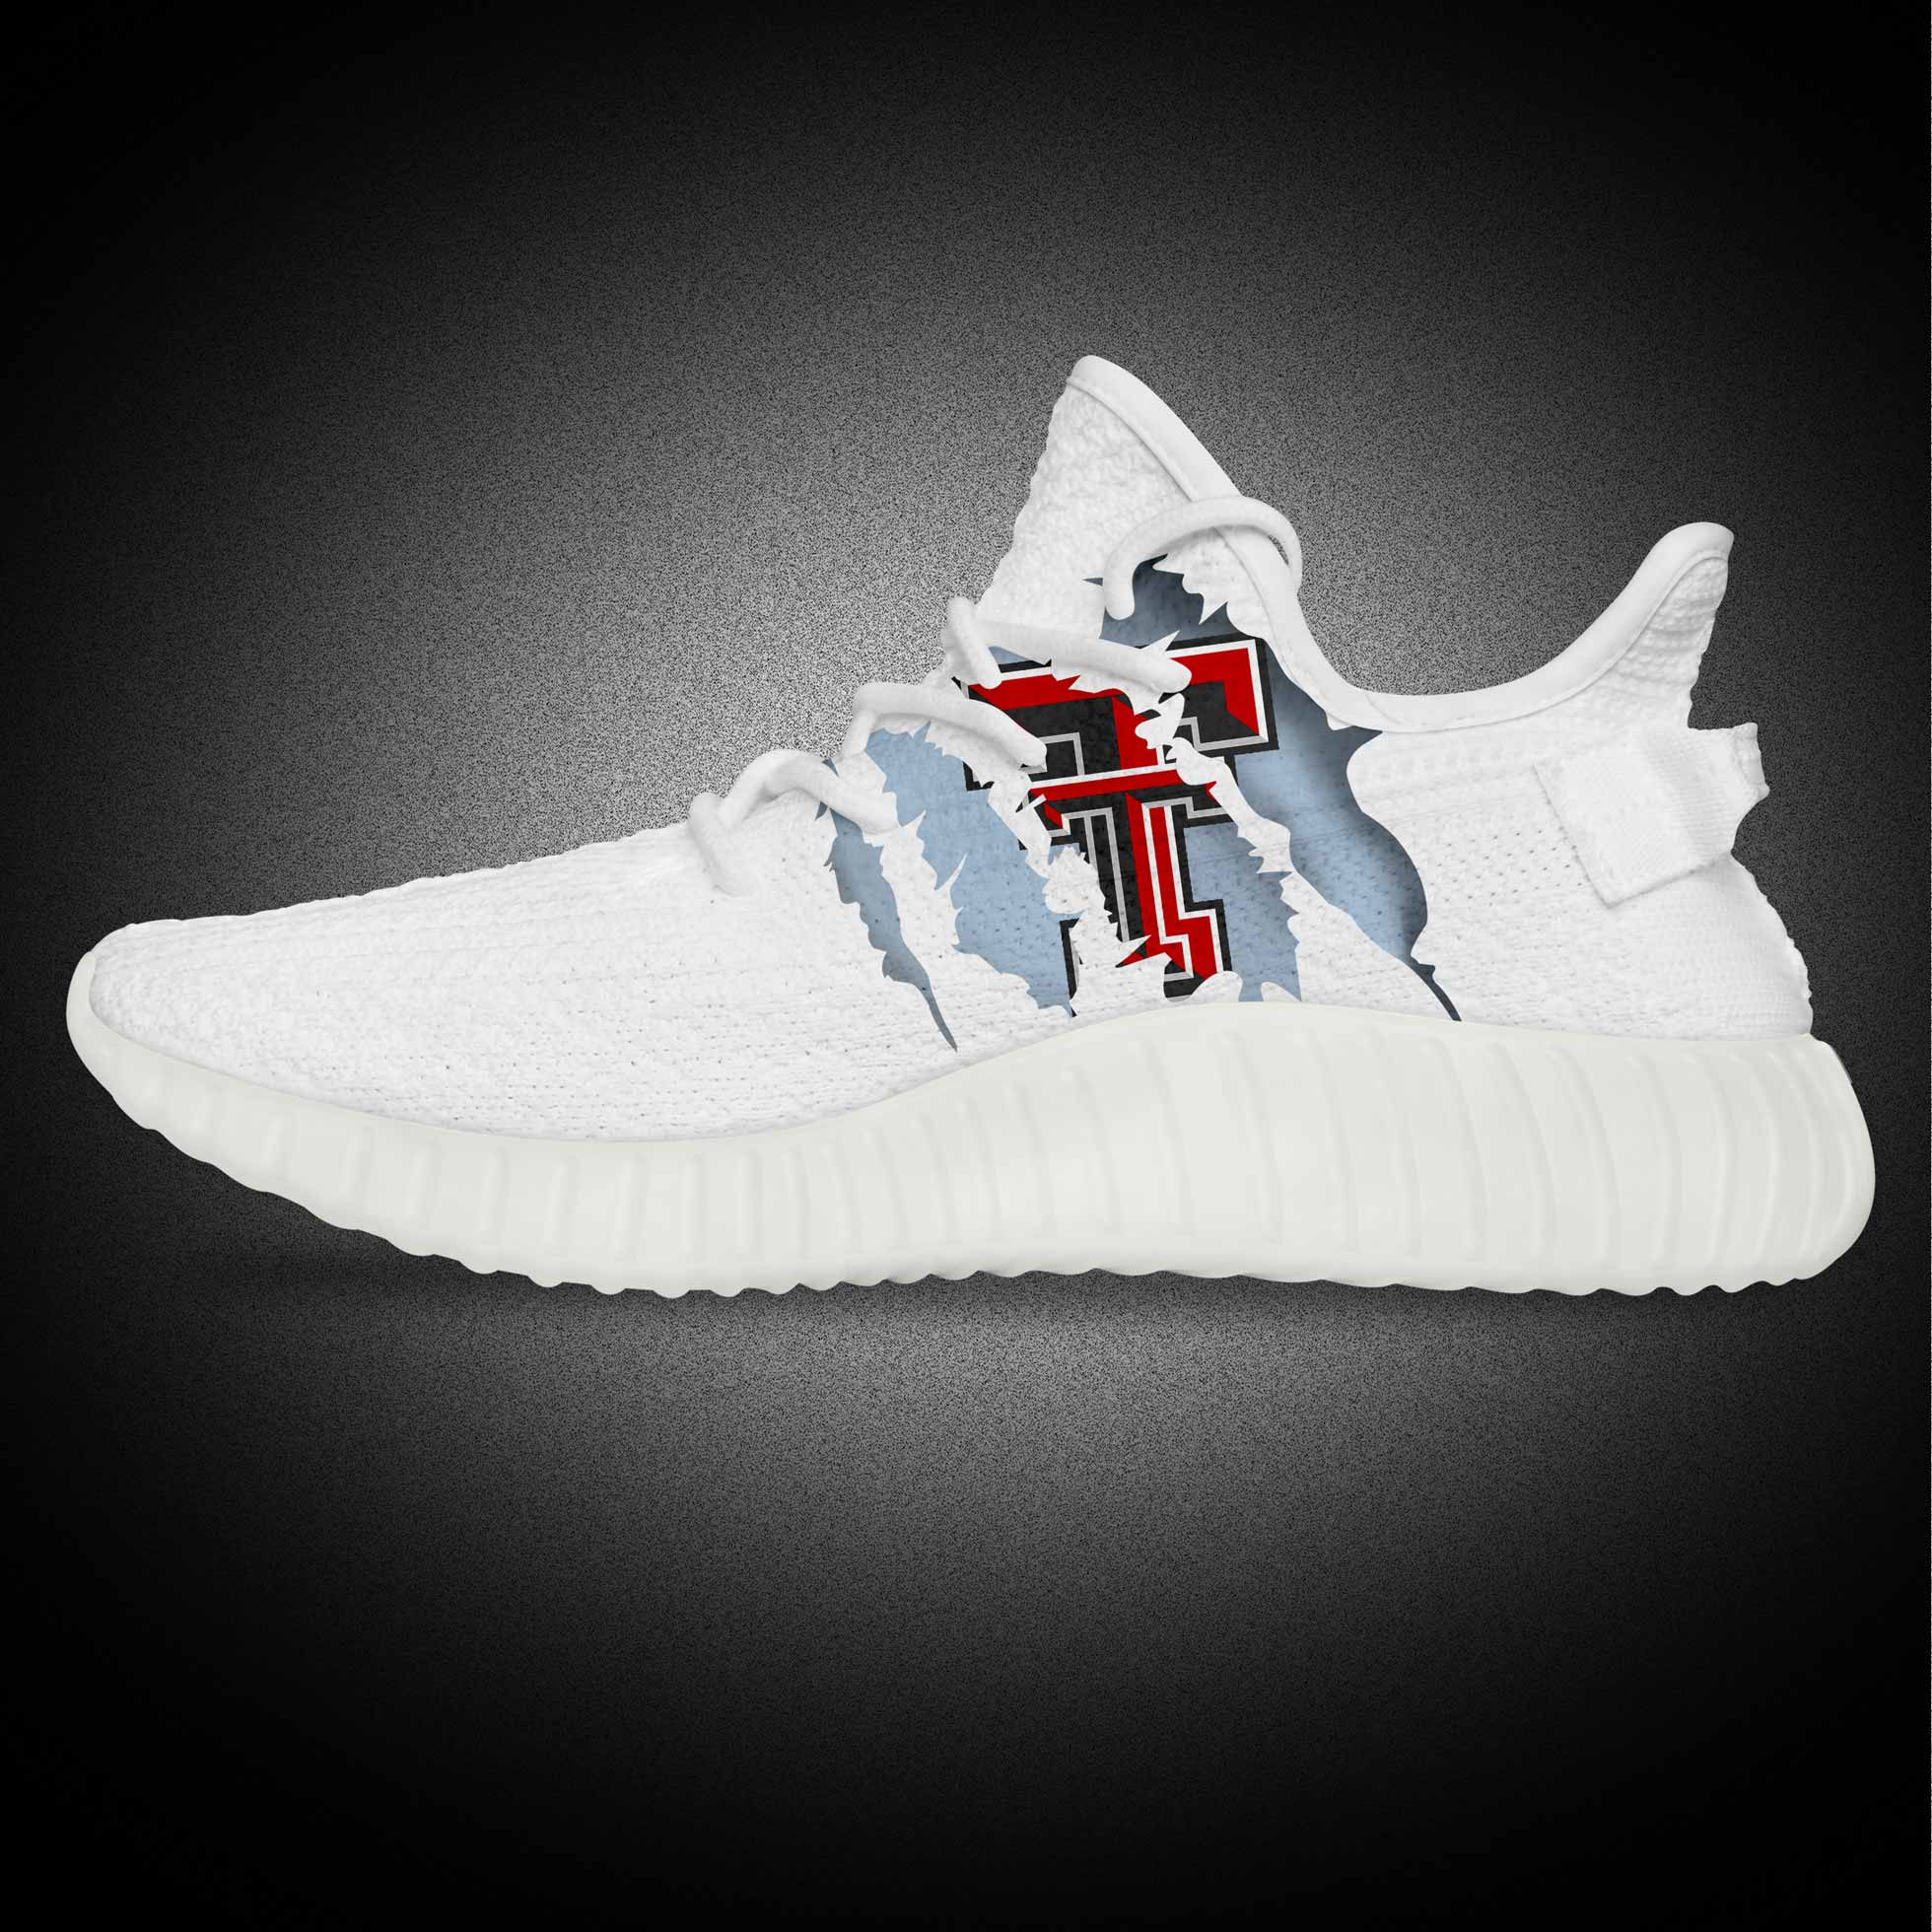 Classic White Print Yeezy Original Sport Shoes for Men And Women